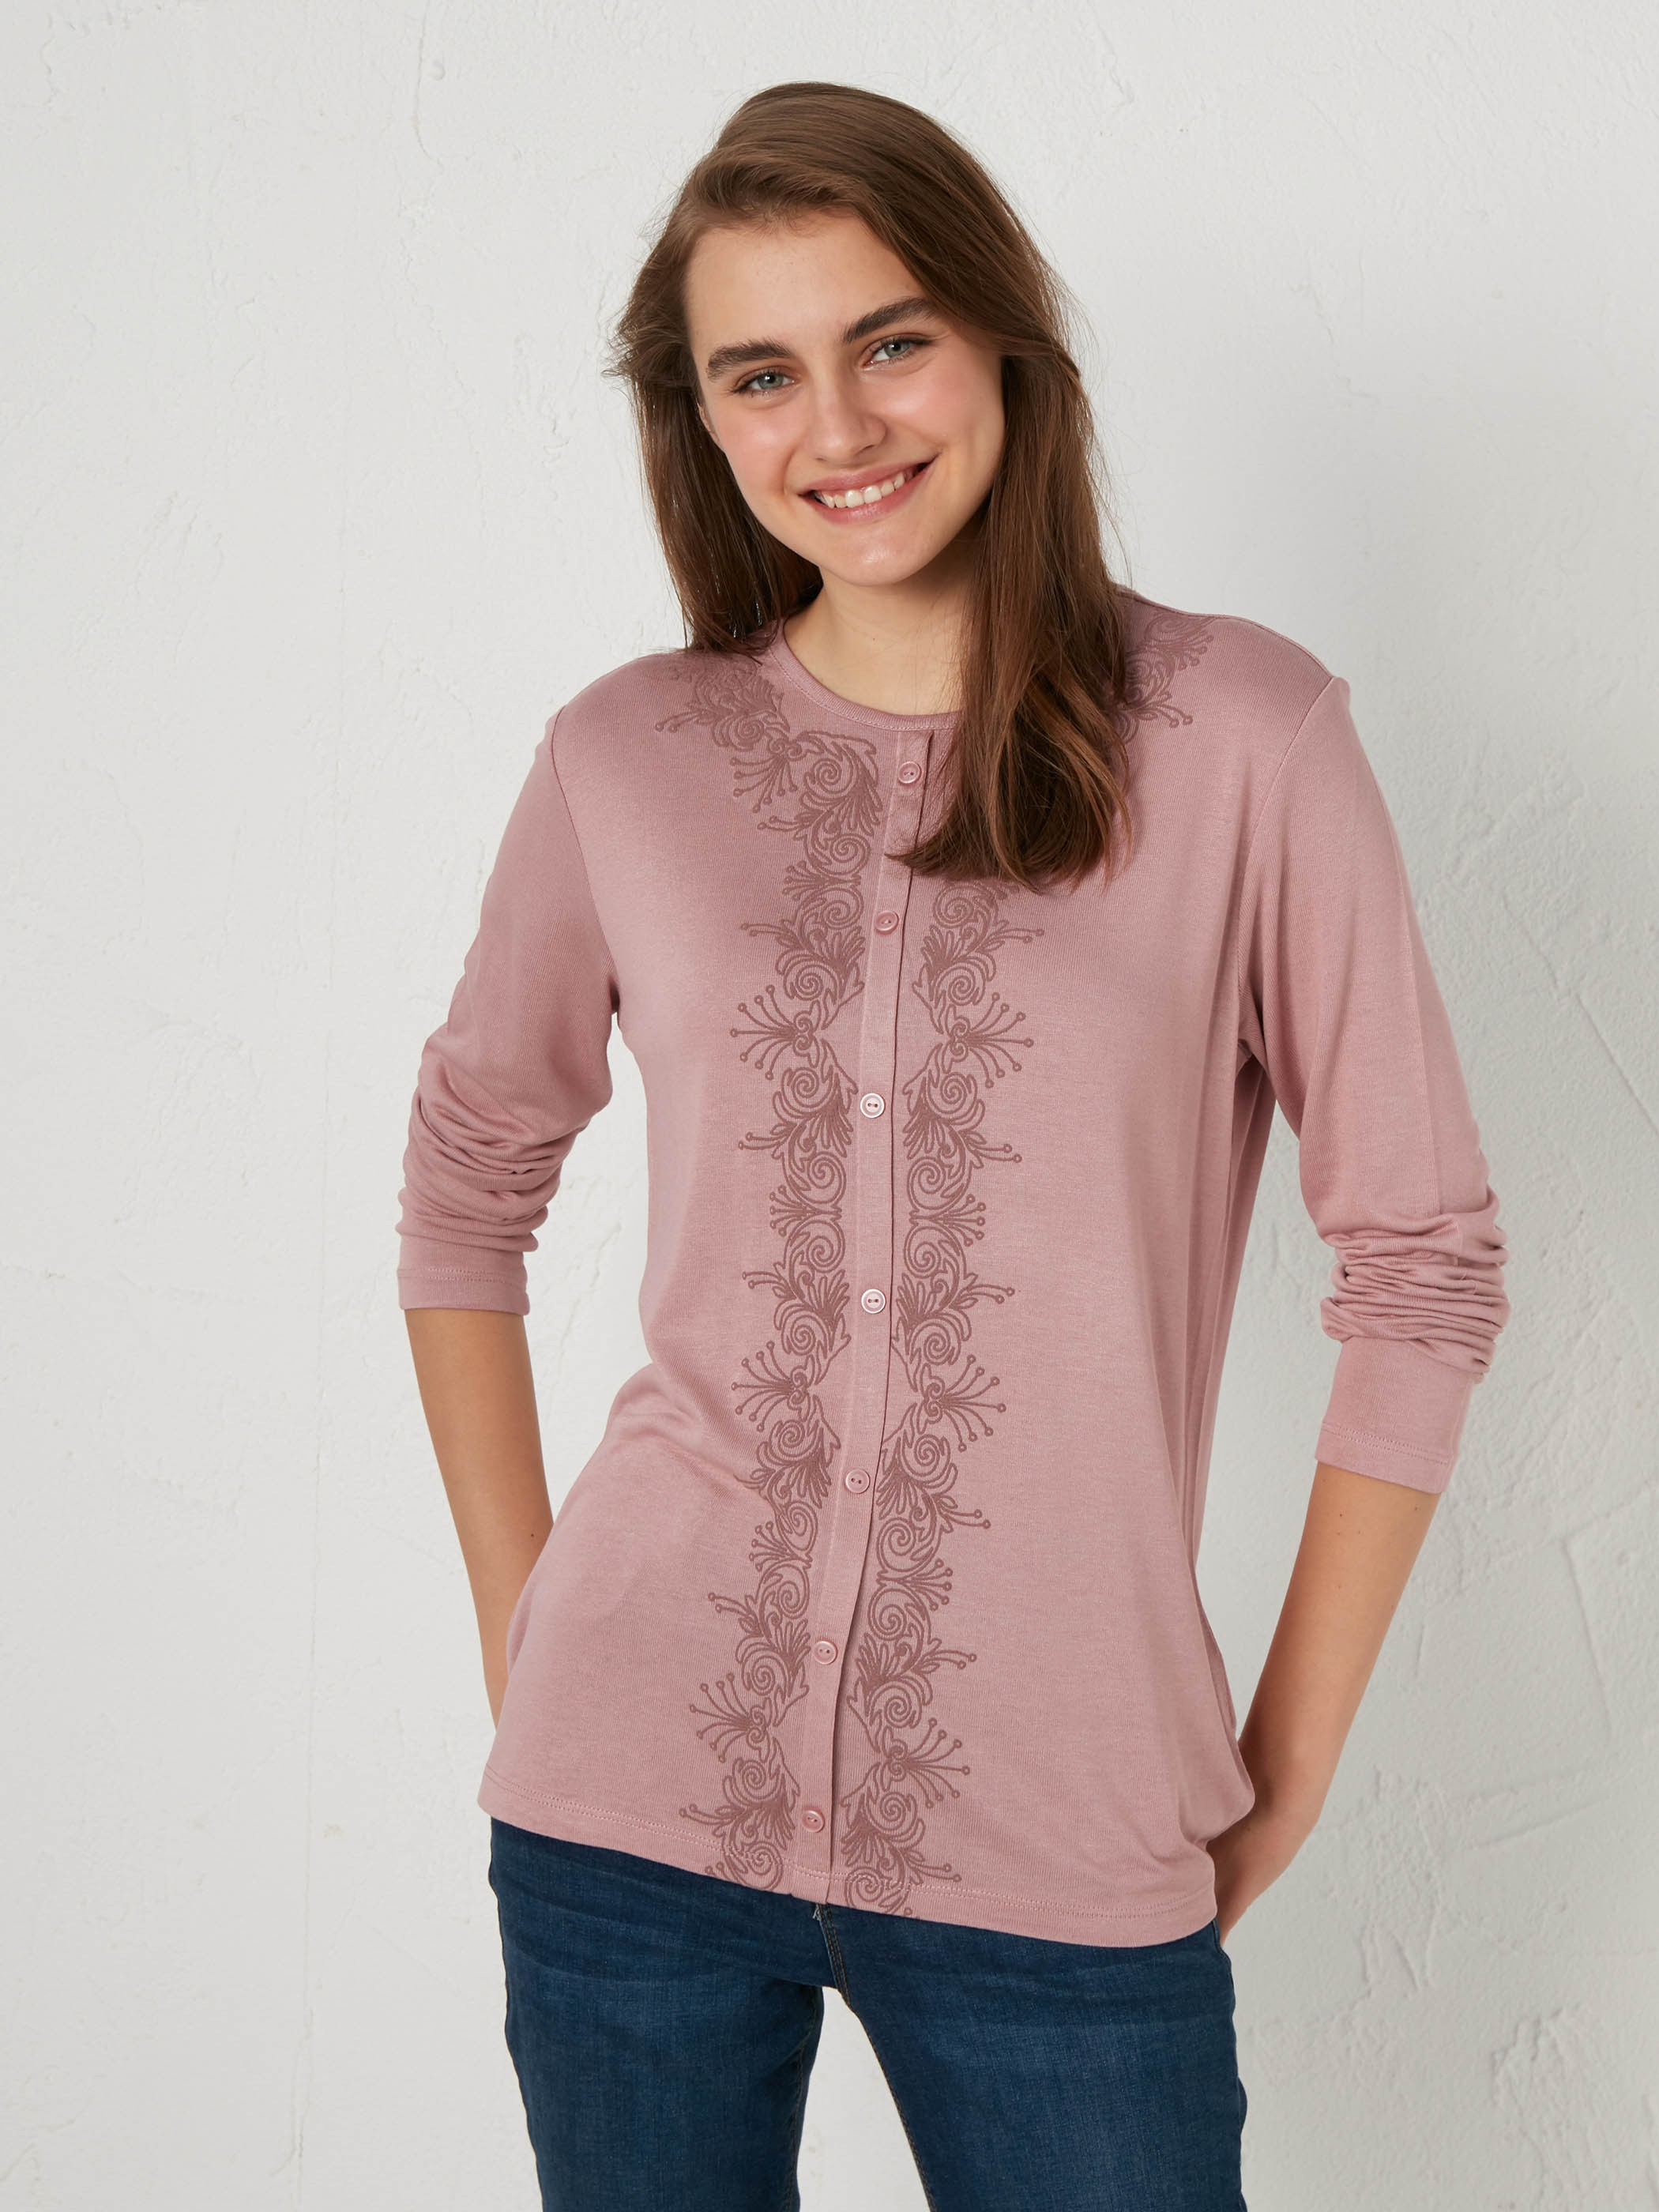 PINK - Embroidered Neck Flexible T-Shirt - 0WGT43Z8